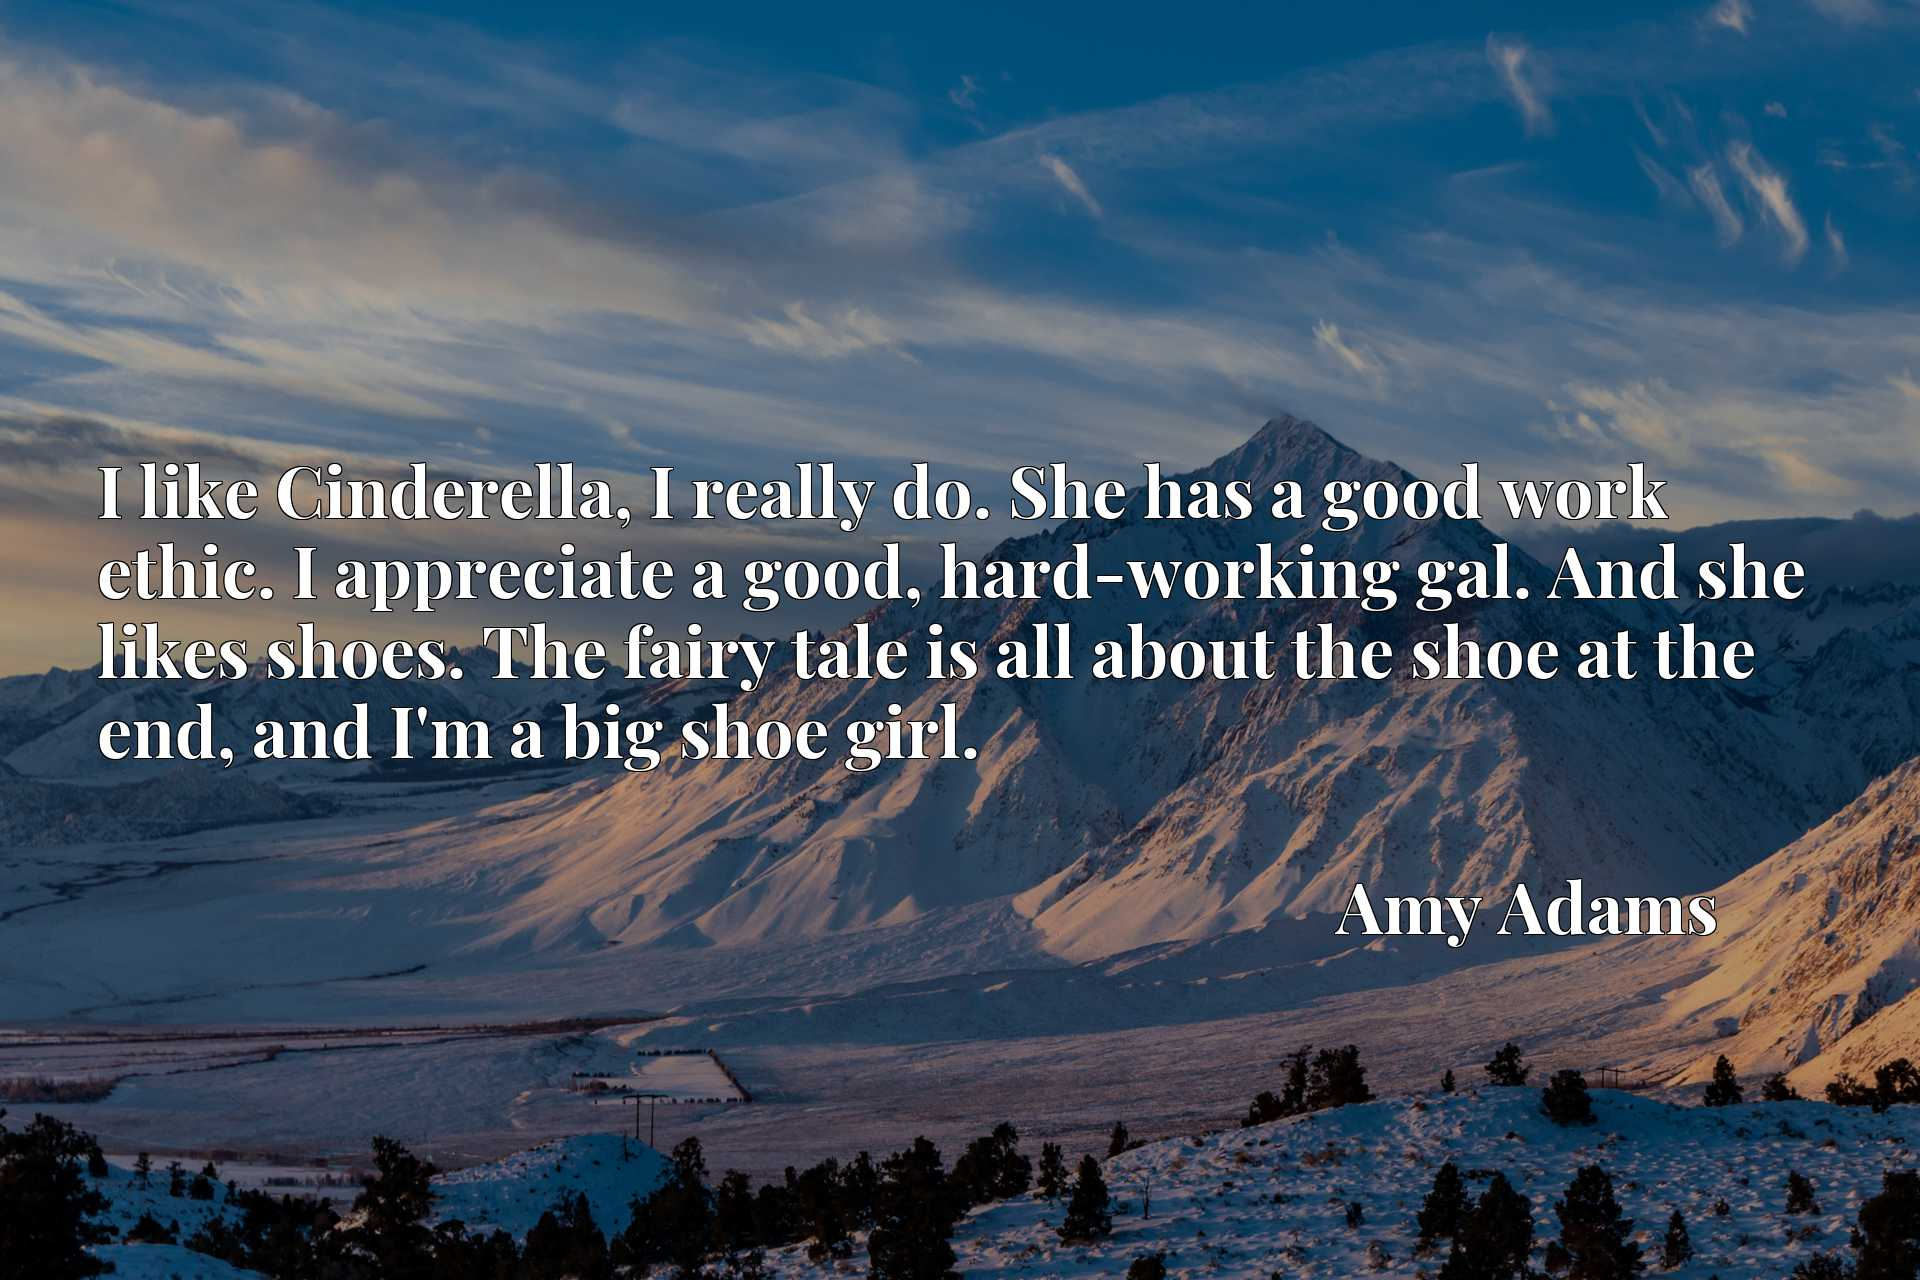 I like Cinderella, I really do. She has a good work ethic. I appreciate a good, hard-working gal. And she likes shoes. The fairy tale is all about the shoe at the end, and I'm a big shoe girl.